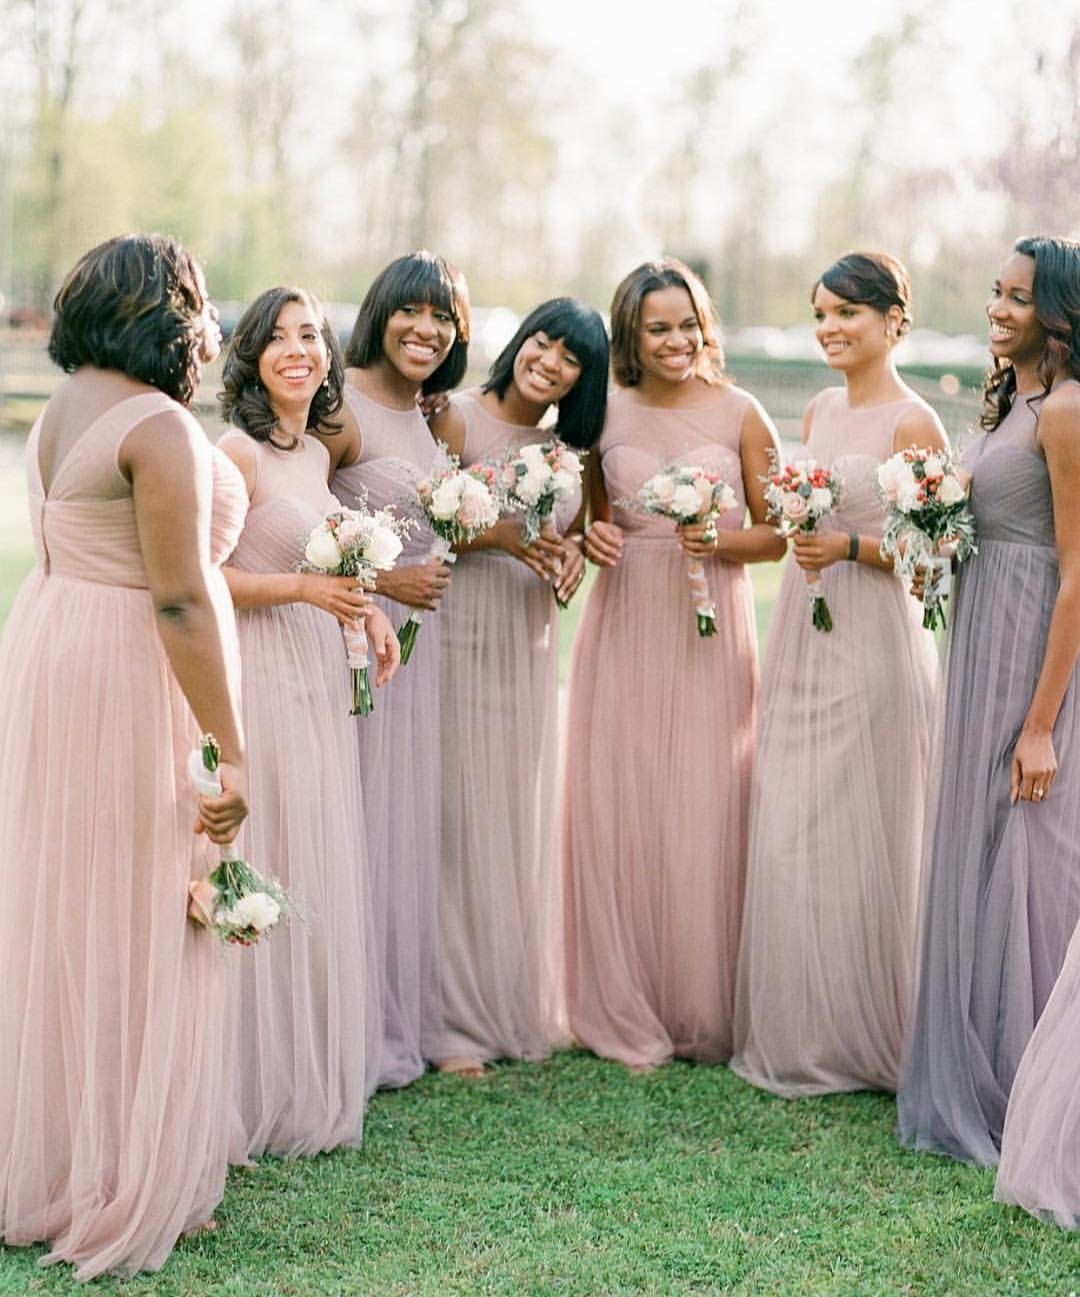 bridesmaids wearing mismatched bridesmaid dresses in a combination of light purple and mauve and blush